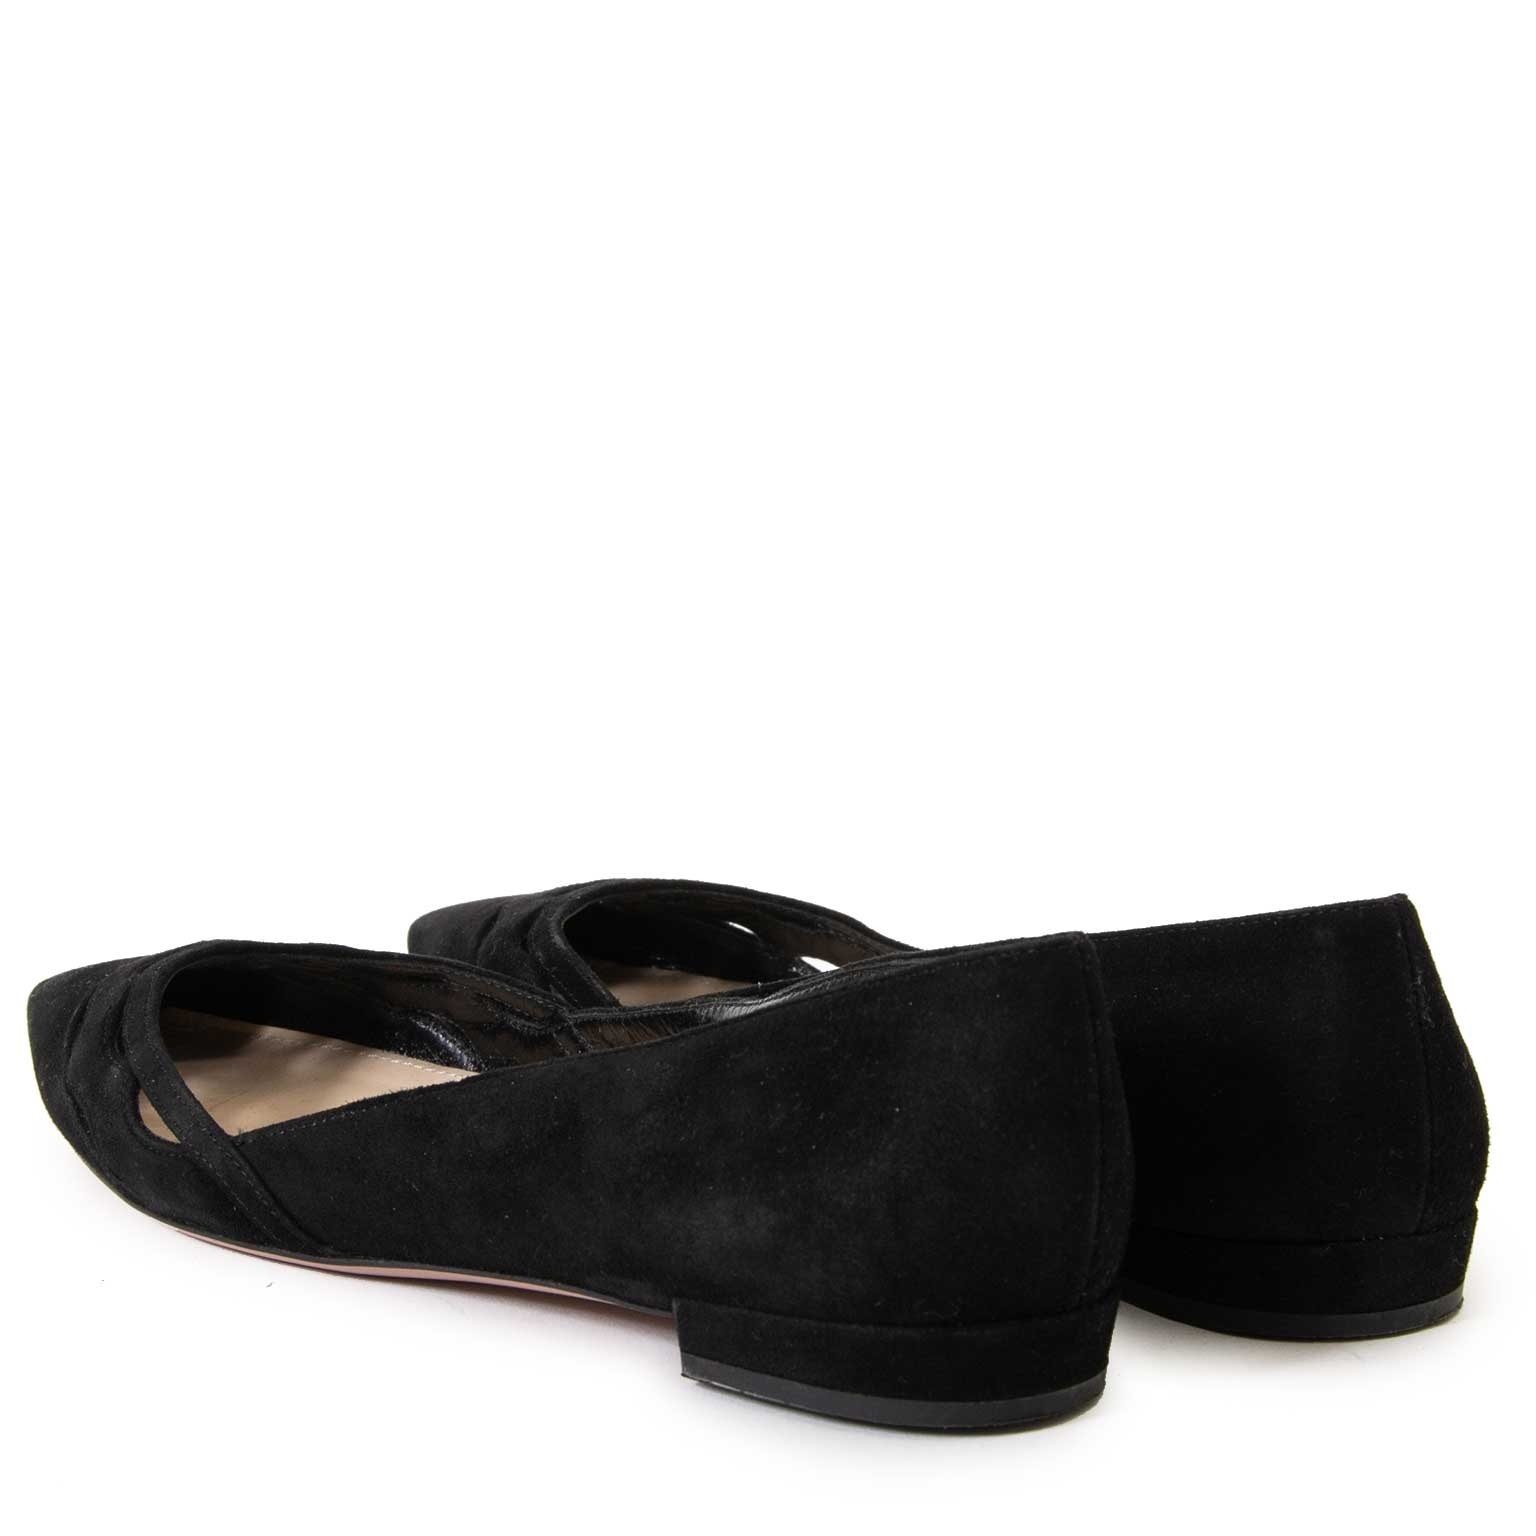 prada suede black point toe flats now for sale at labellov vintage fashion webshop belgium